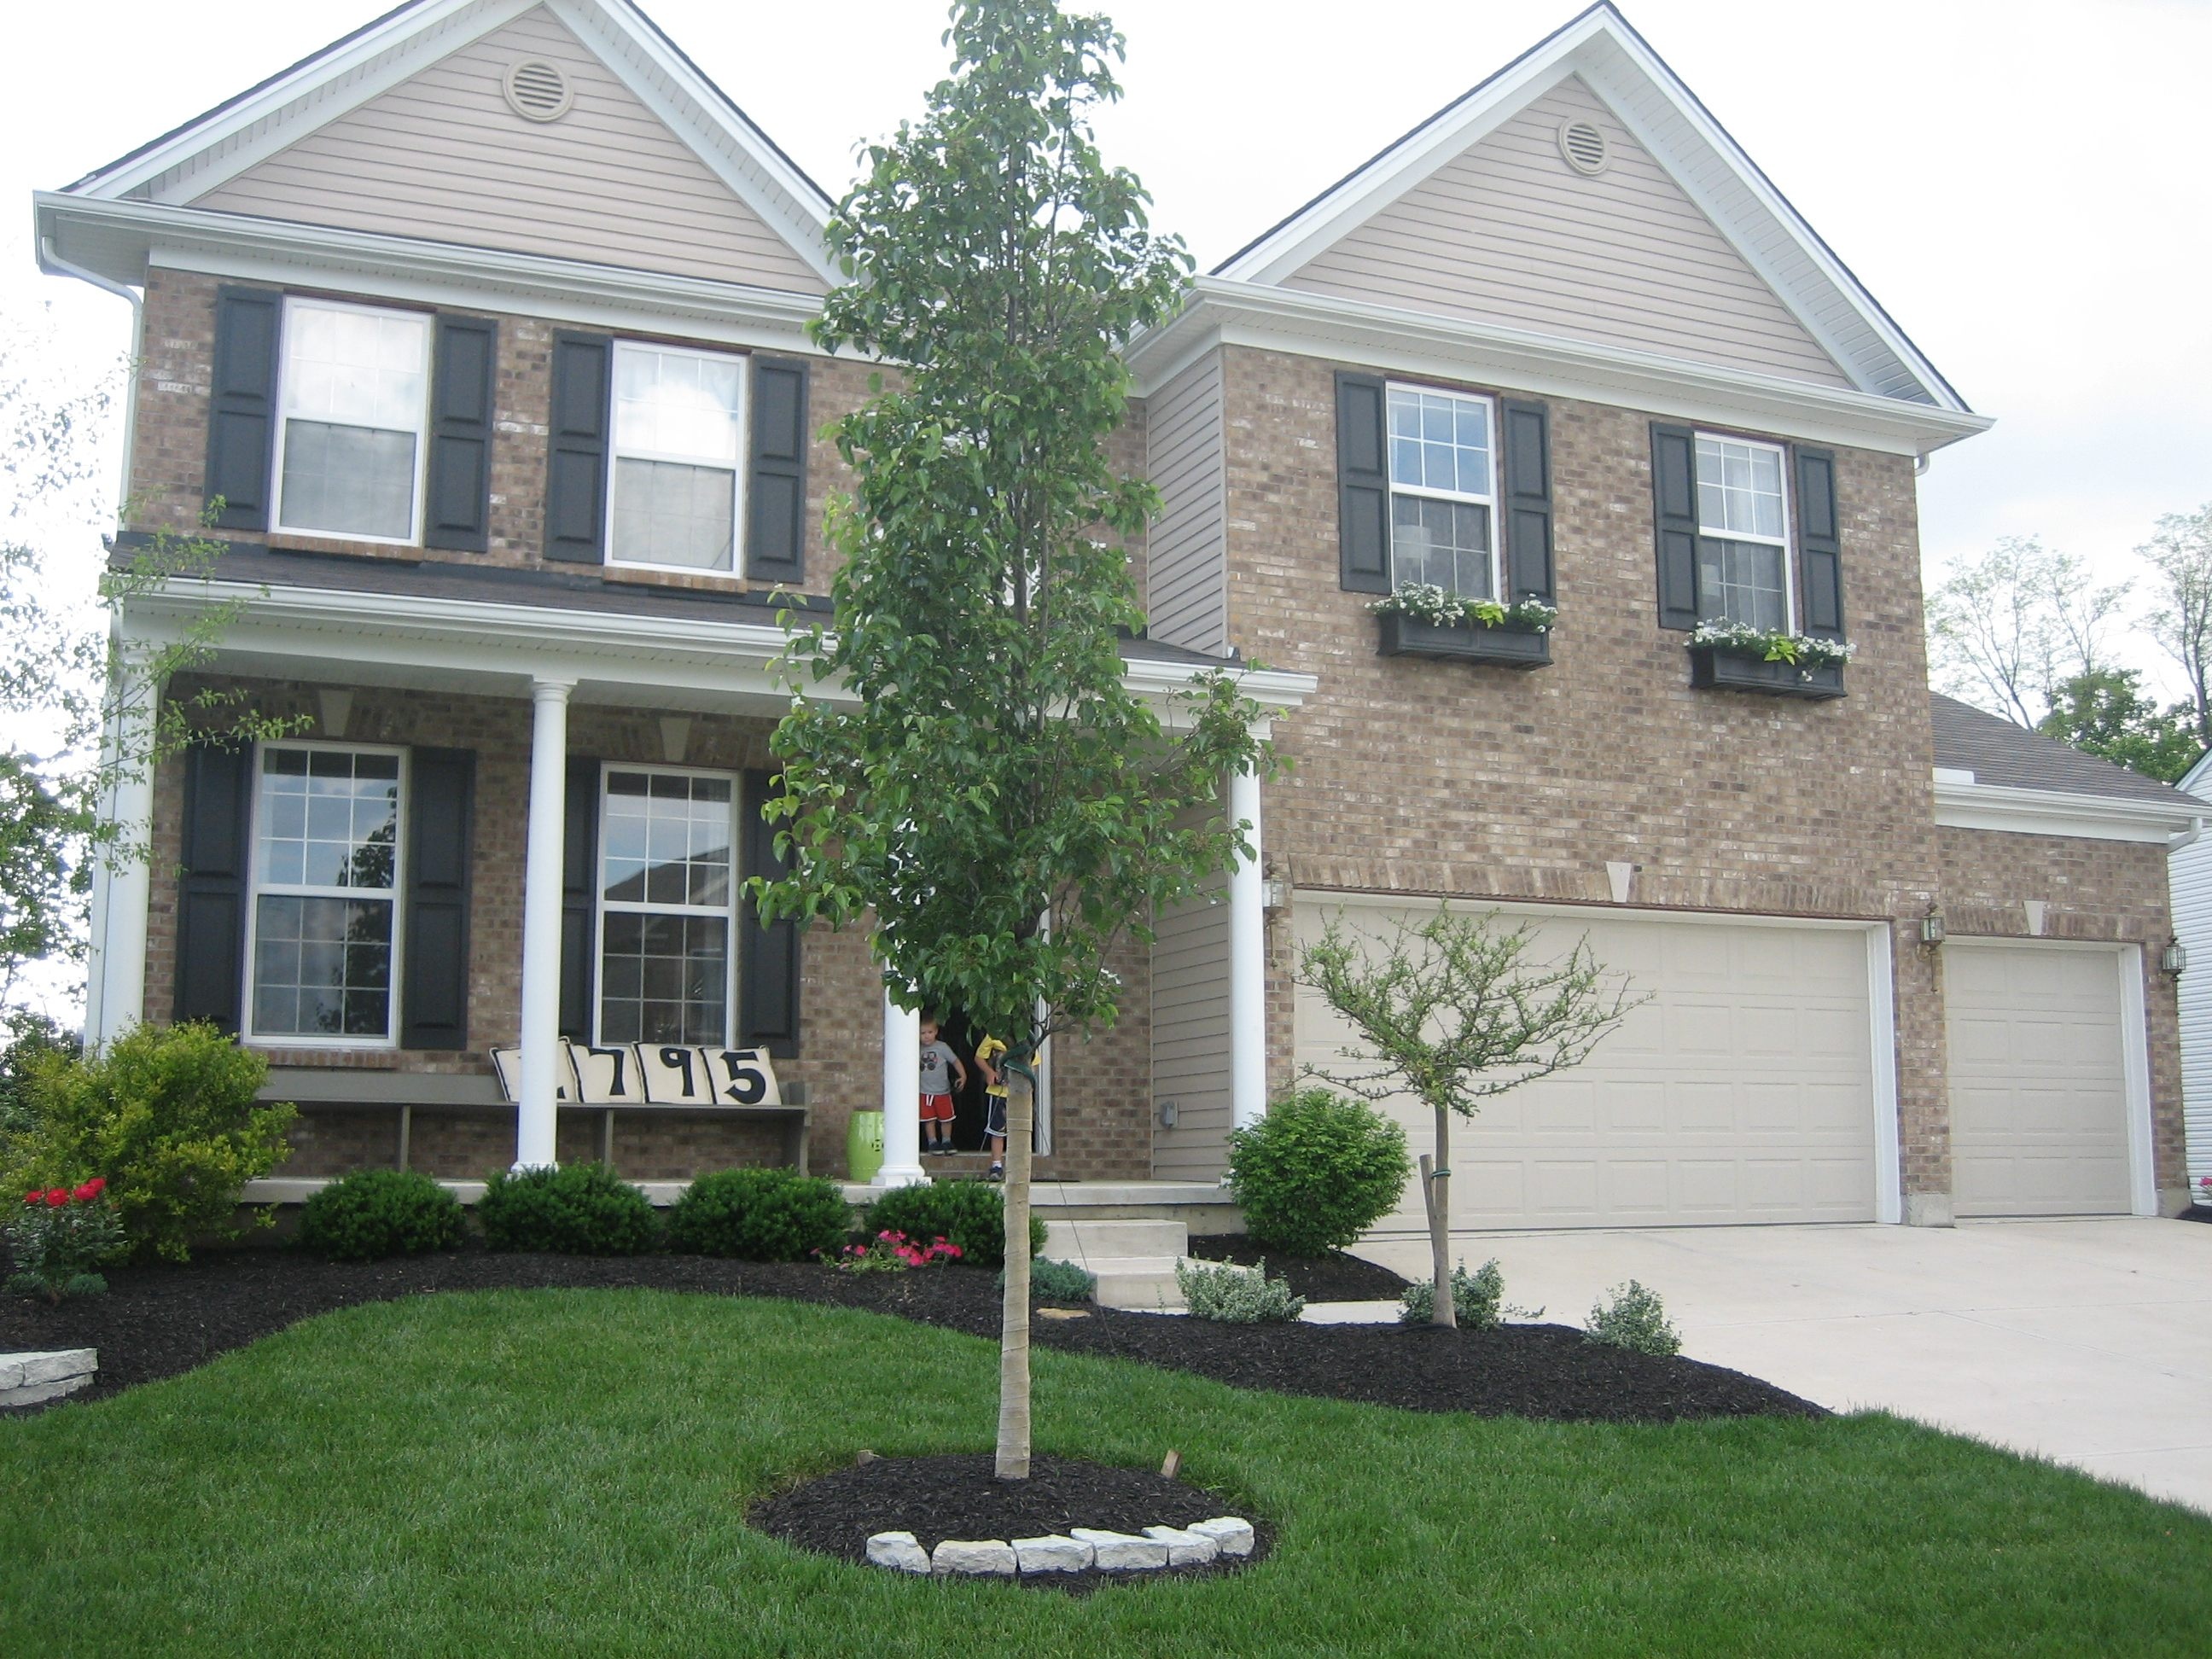 Landscaping ideas for house with front porch pdf for Landscaping a small area in front of house